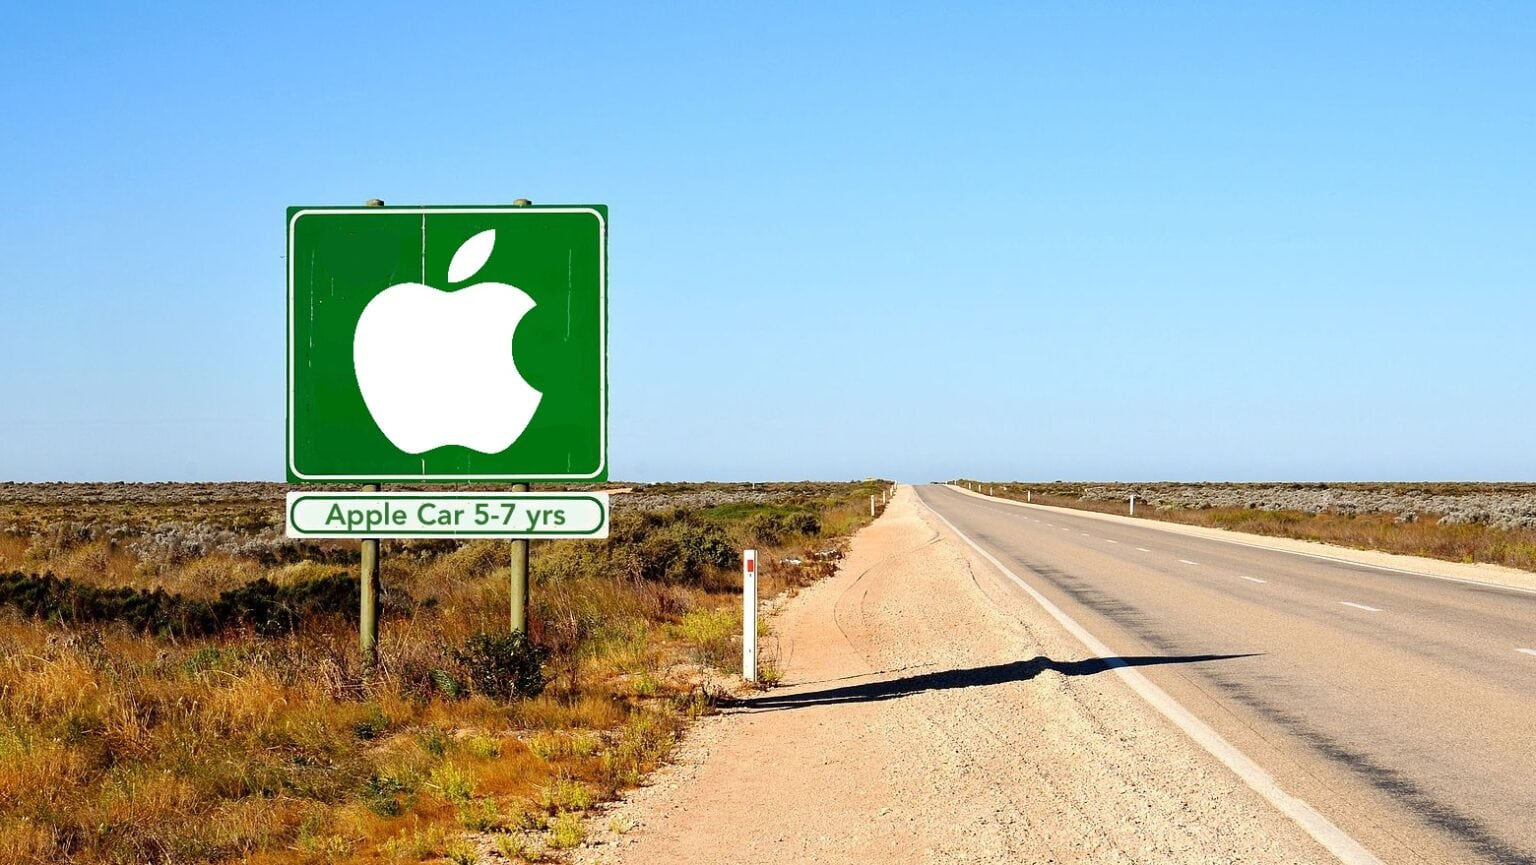 That's the signpost up ahead - your next stop, the Apple Car. The Apple Car is way down the highway. But Apple has the pedal to the metal.